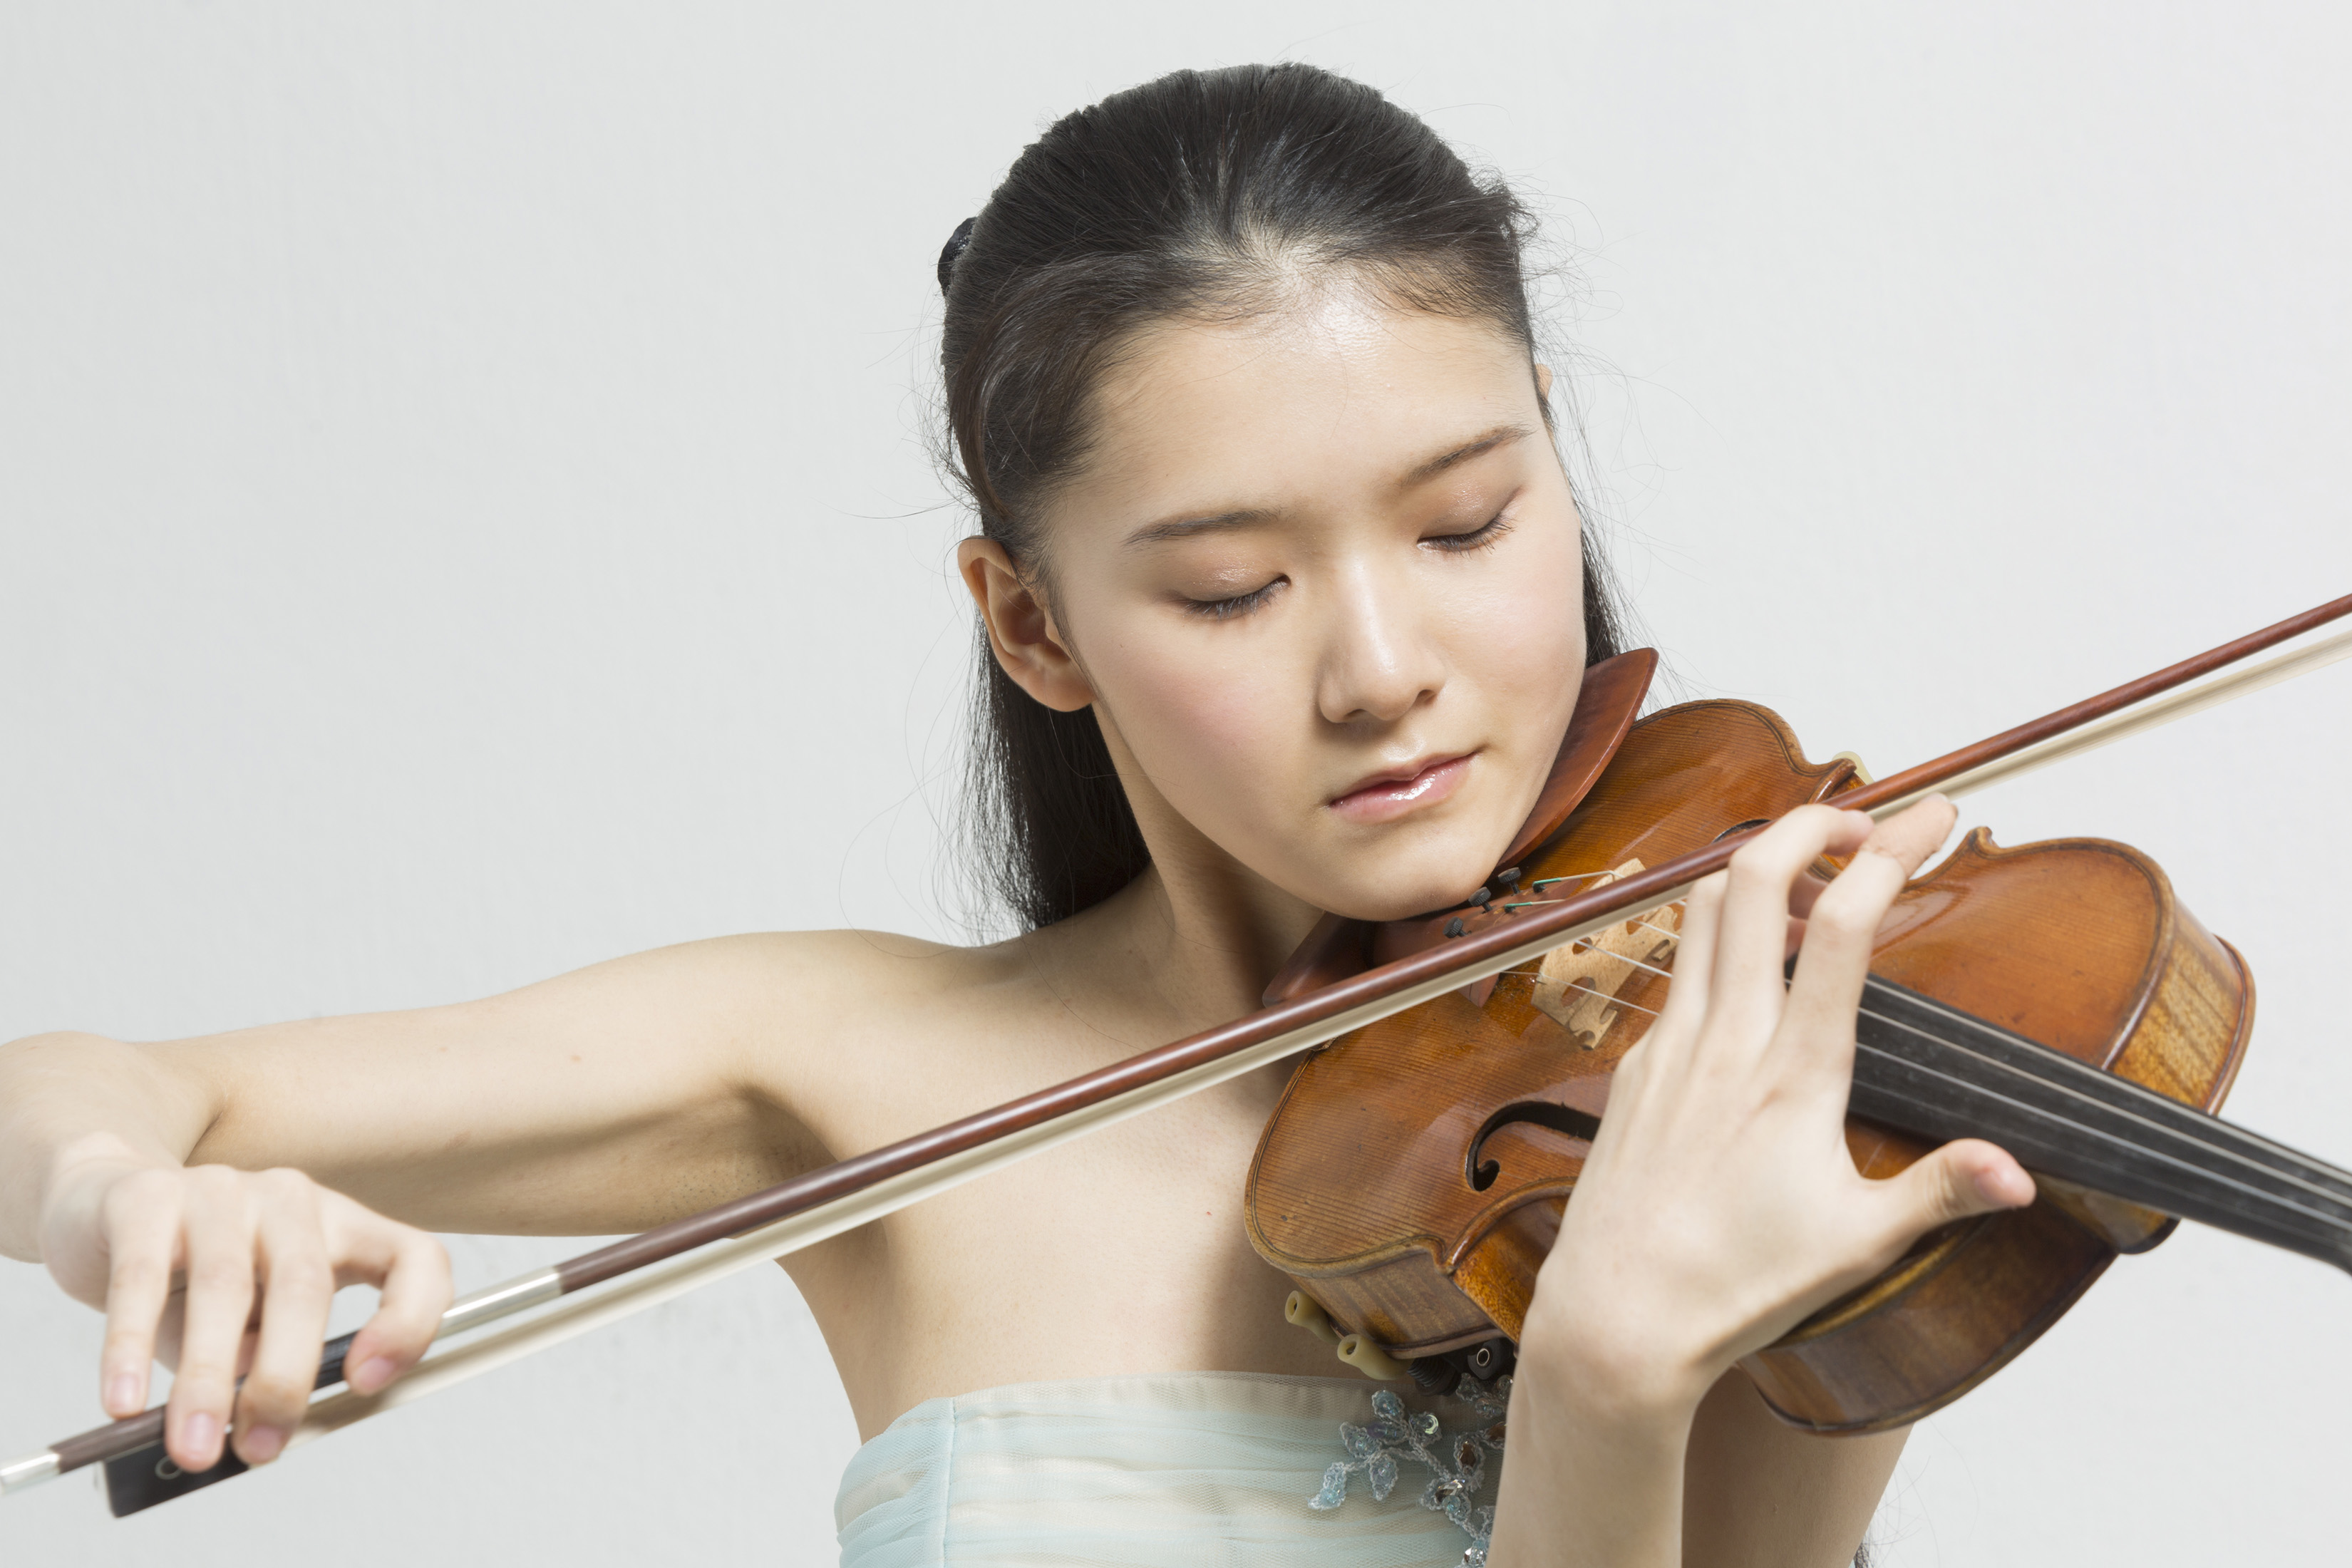 Moné Hattori will be on tour with the Japan Century Symphony Orchestra 4